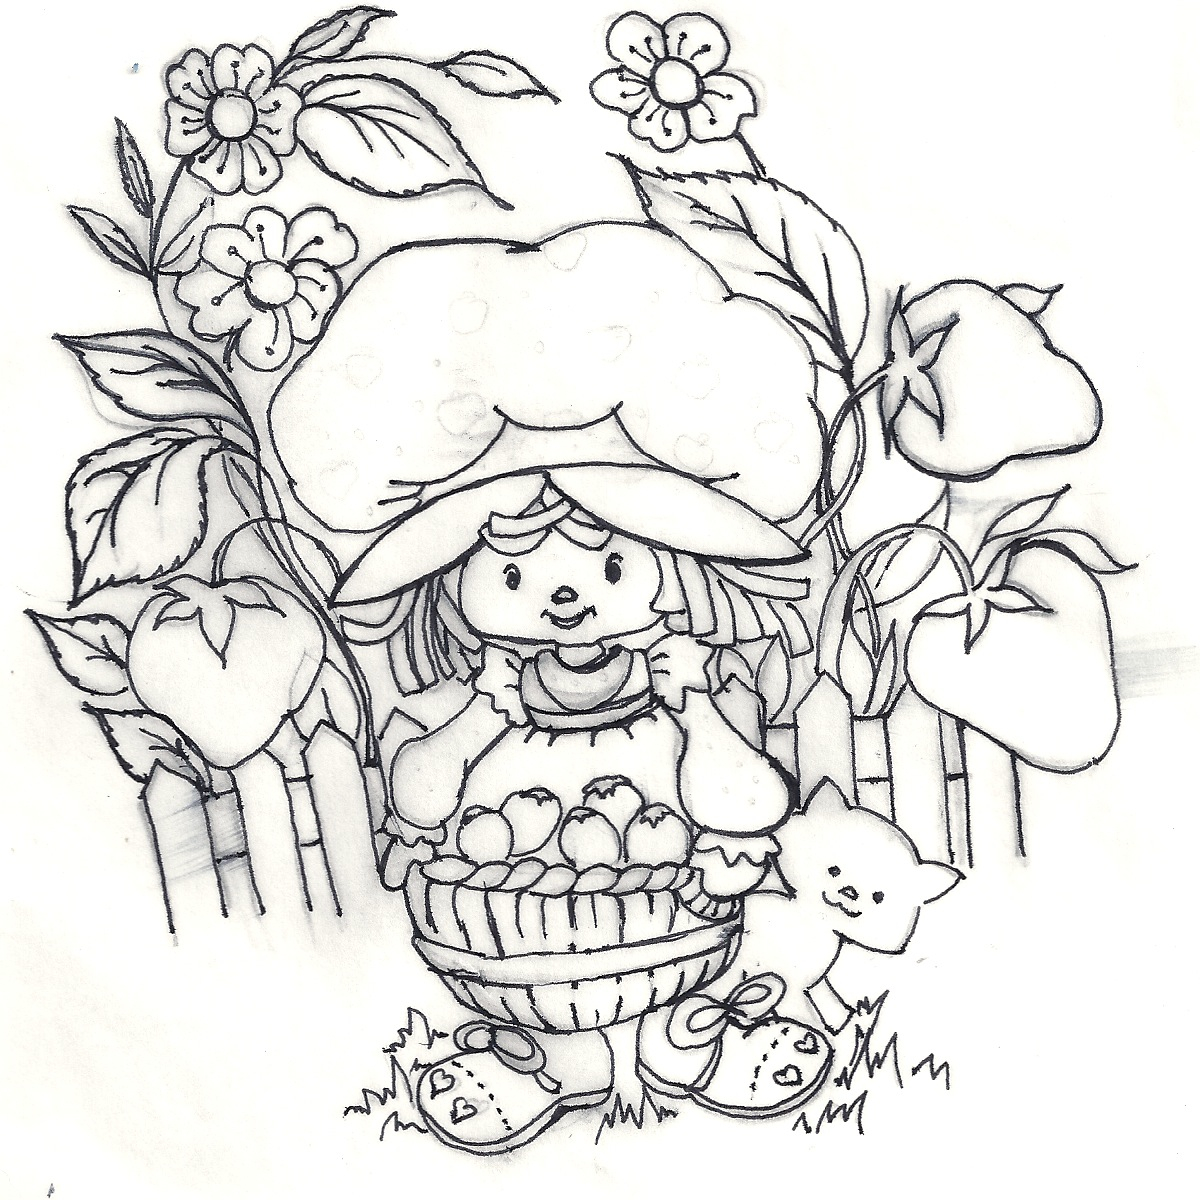 Coloring pages vintage - Vintage Strawberry Shortcake Coloring Pages Coloring Pages